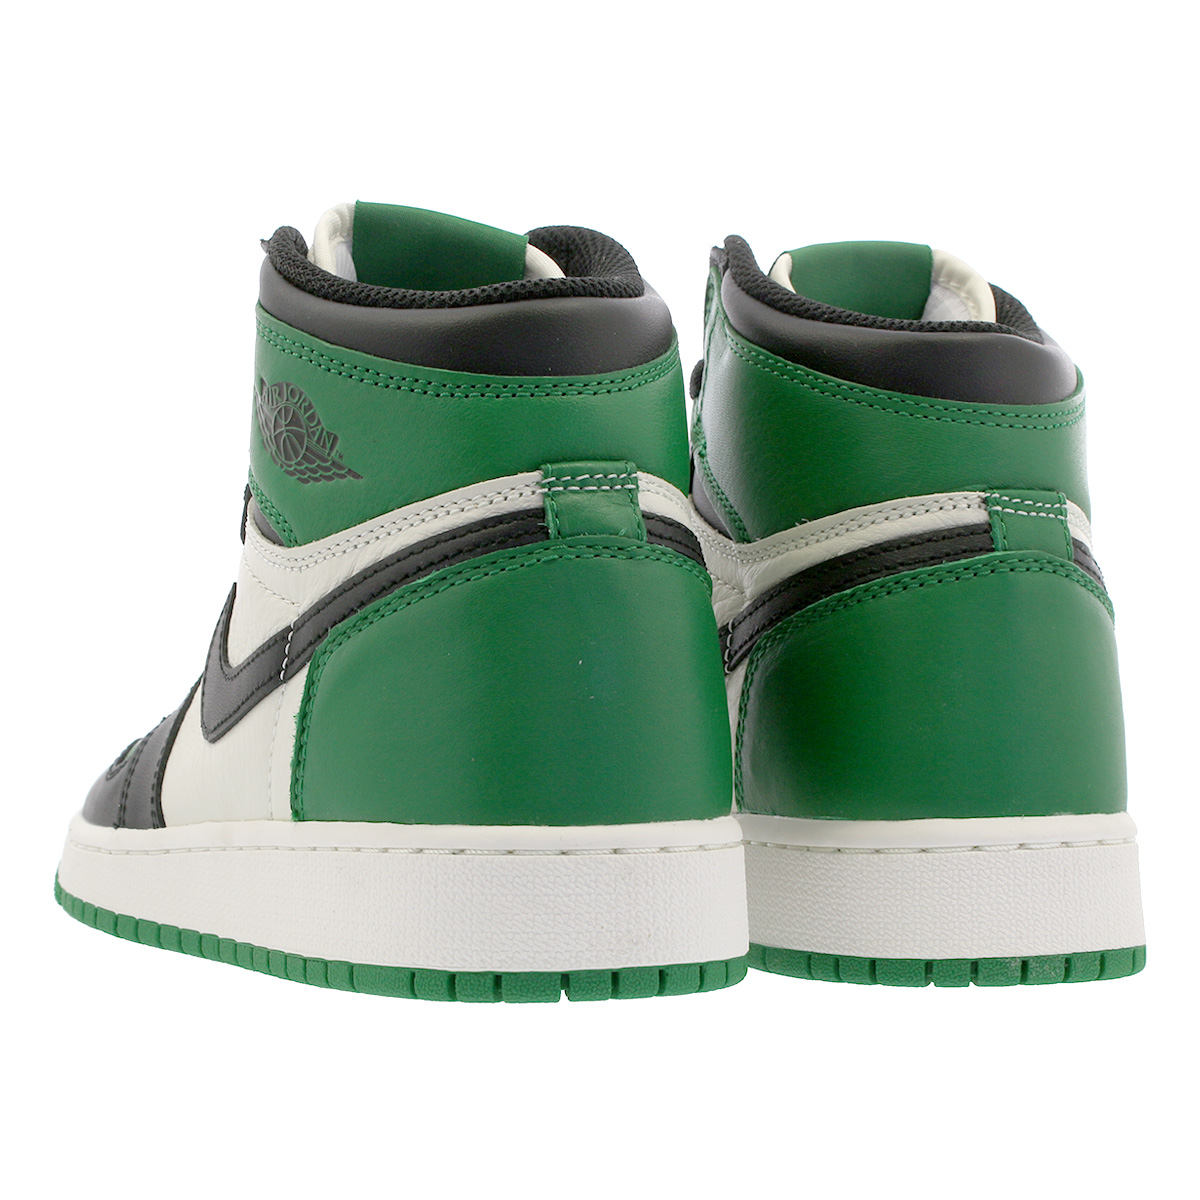 NIKE AIR JORDAN 1 RETRO HIGH OG BG Nike Air Jordan 1 nostalgic high OG BG PINE  GREEN BLACK SAIL 575 a068b0852